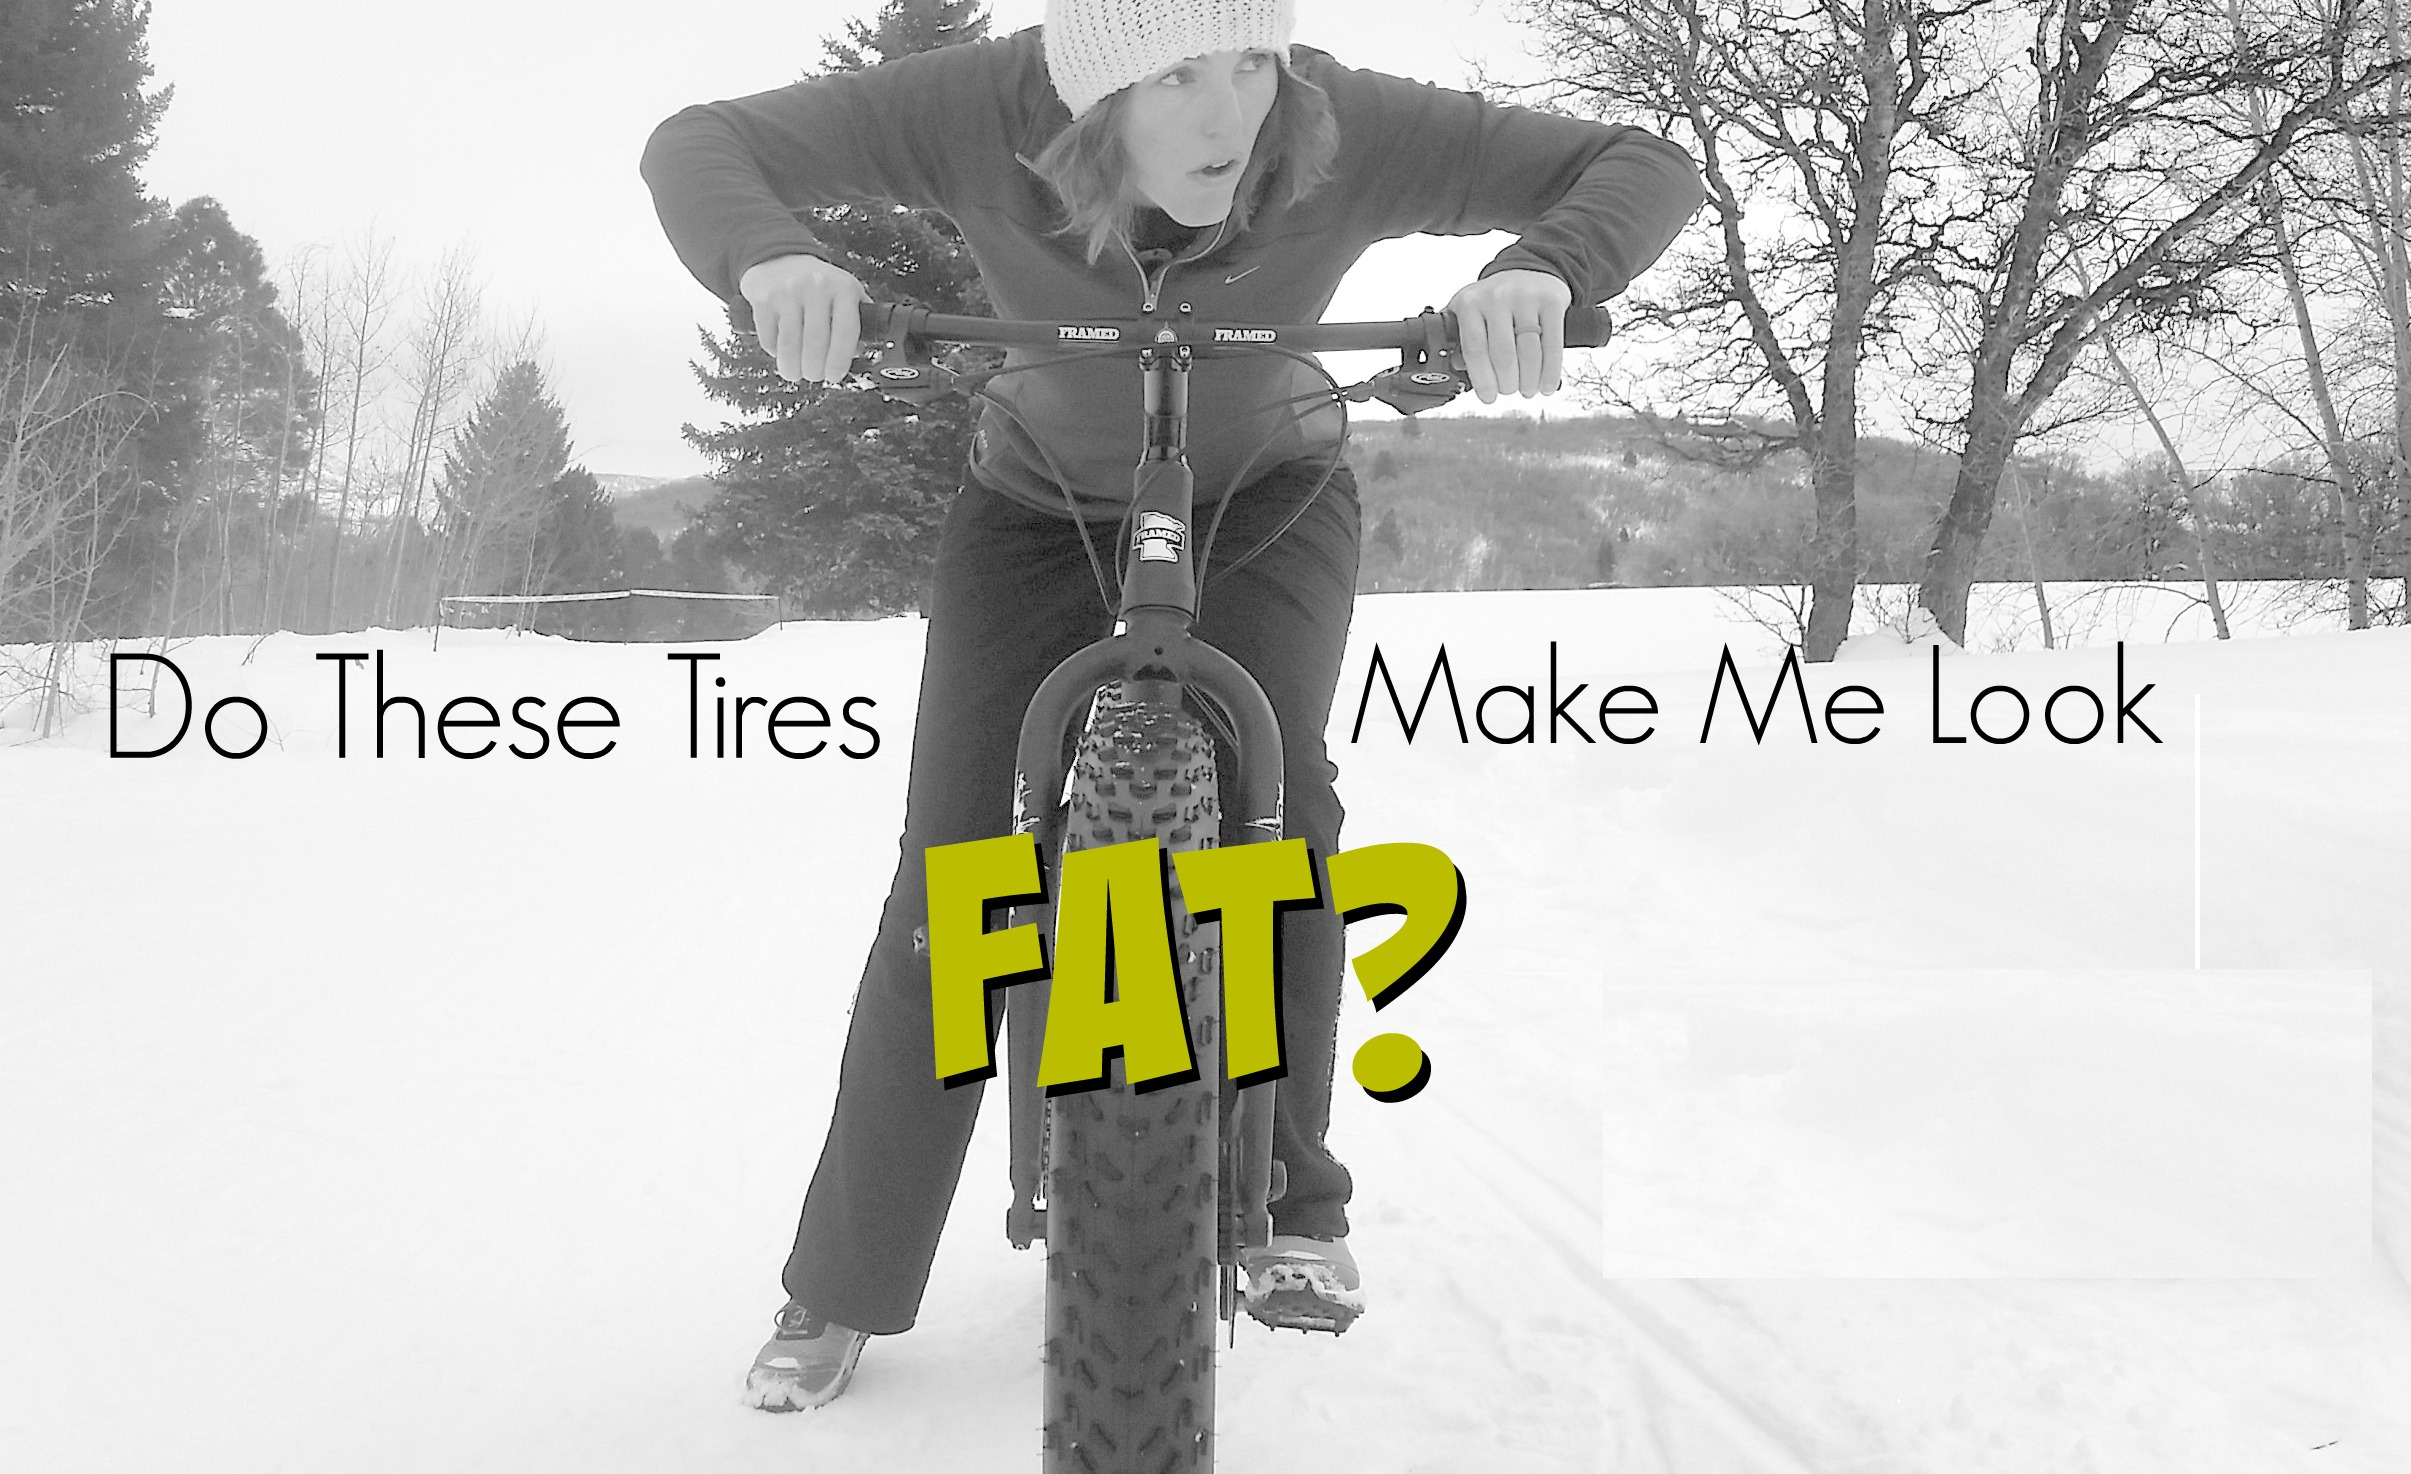 Do These Tires Make Me Look Fat?